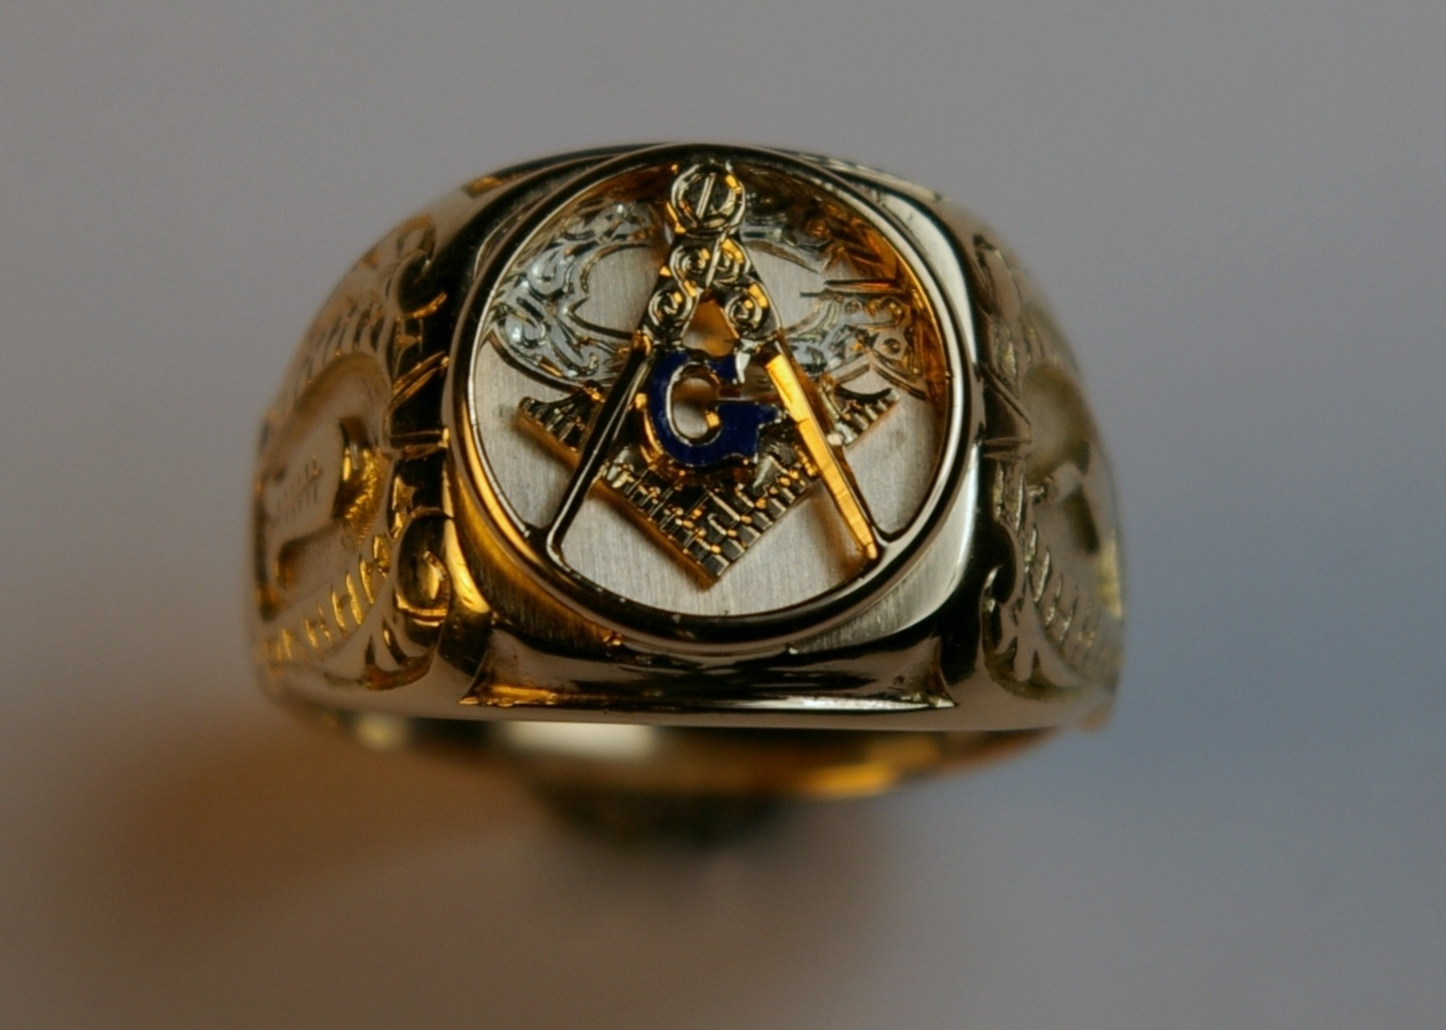 The-Masonic-ring-after-restoration-at-Crane-Jewelers-Seattle.jpg